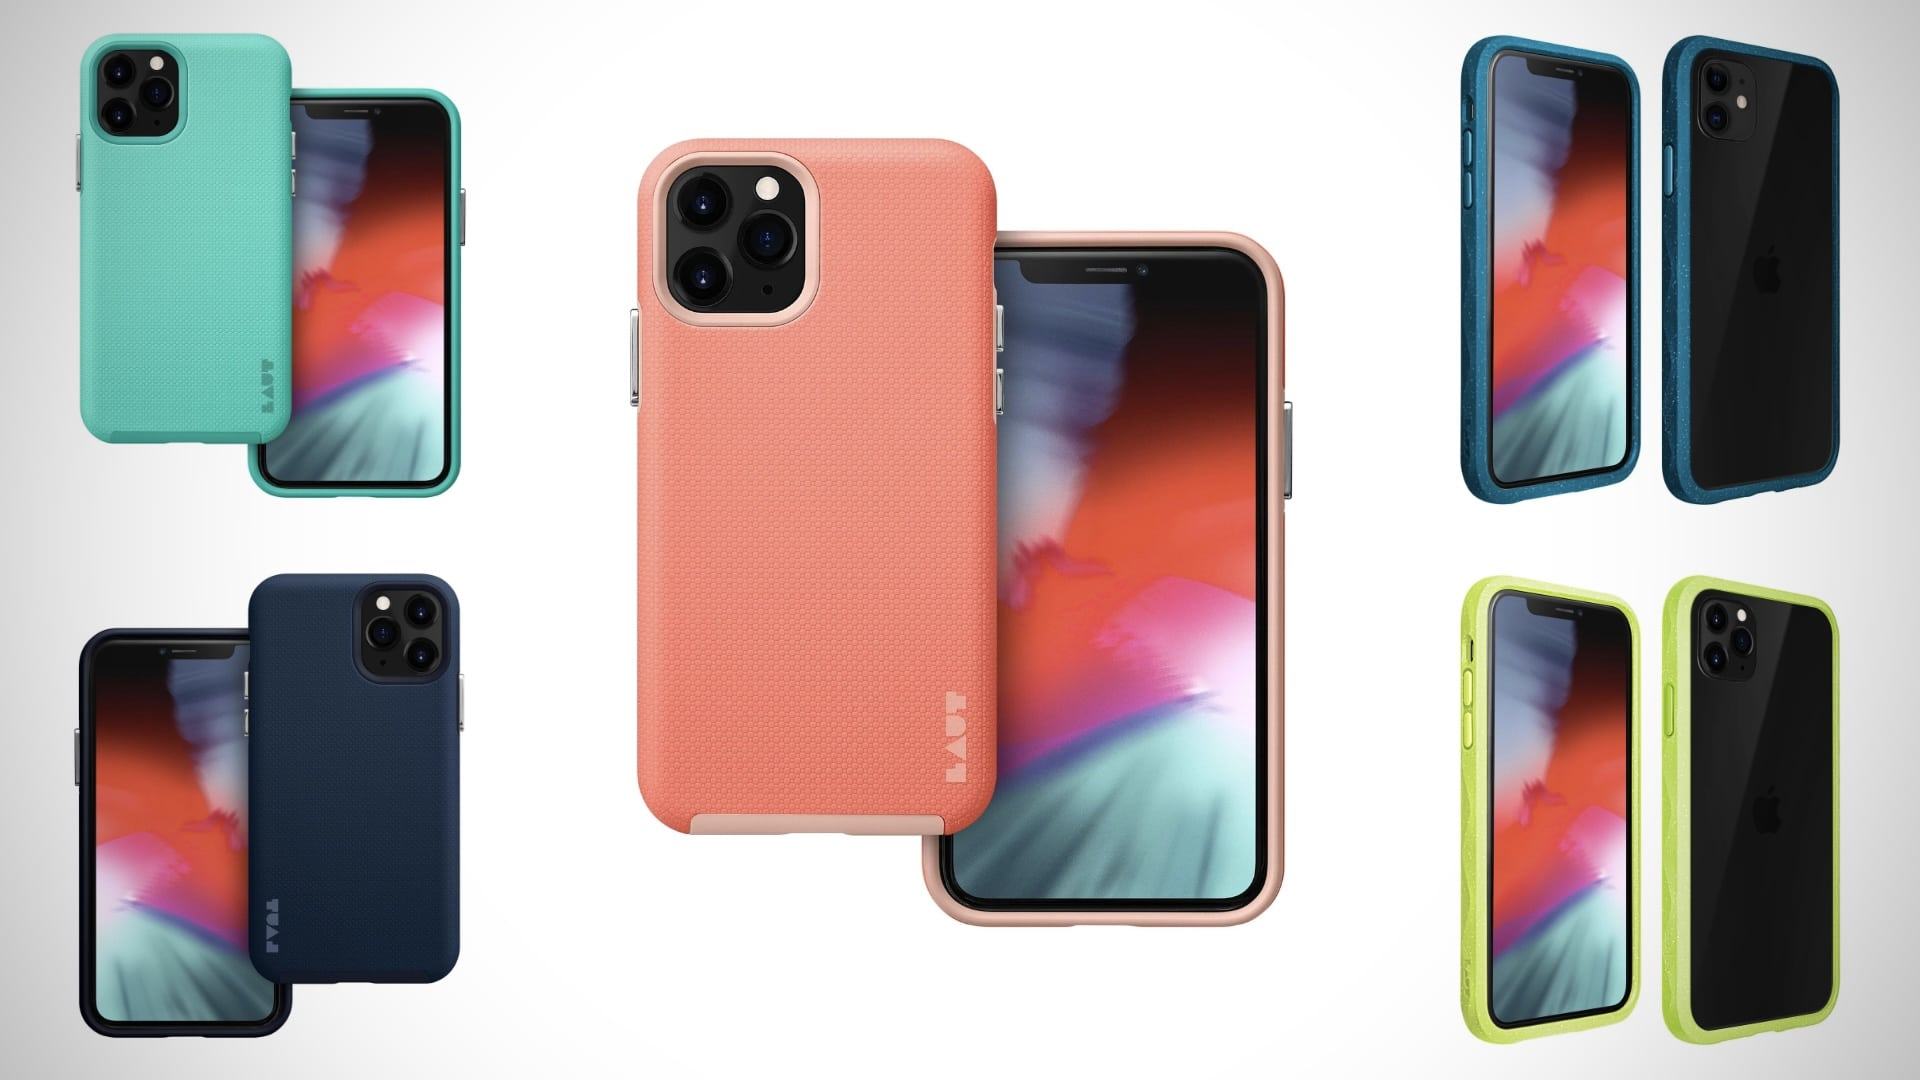 Laut colorful iPhone cases are super-protective and attractive